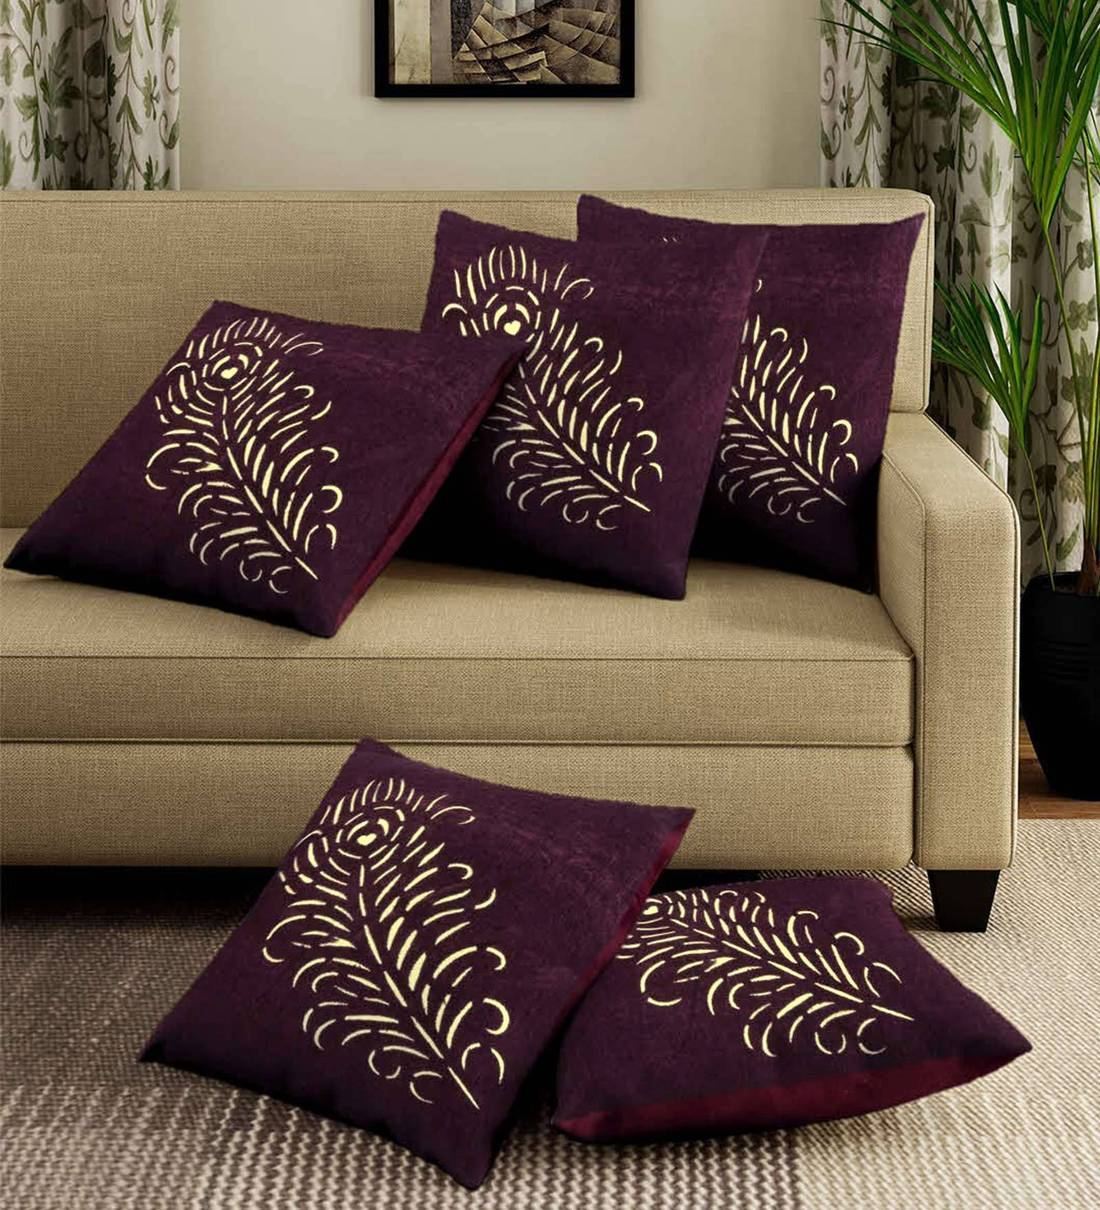 set of 5 floral pattern velvet purple cushion covers 16 x 16 inches